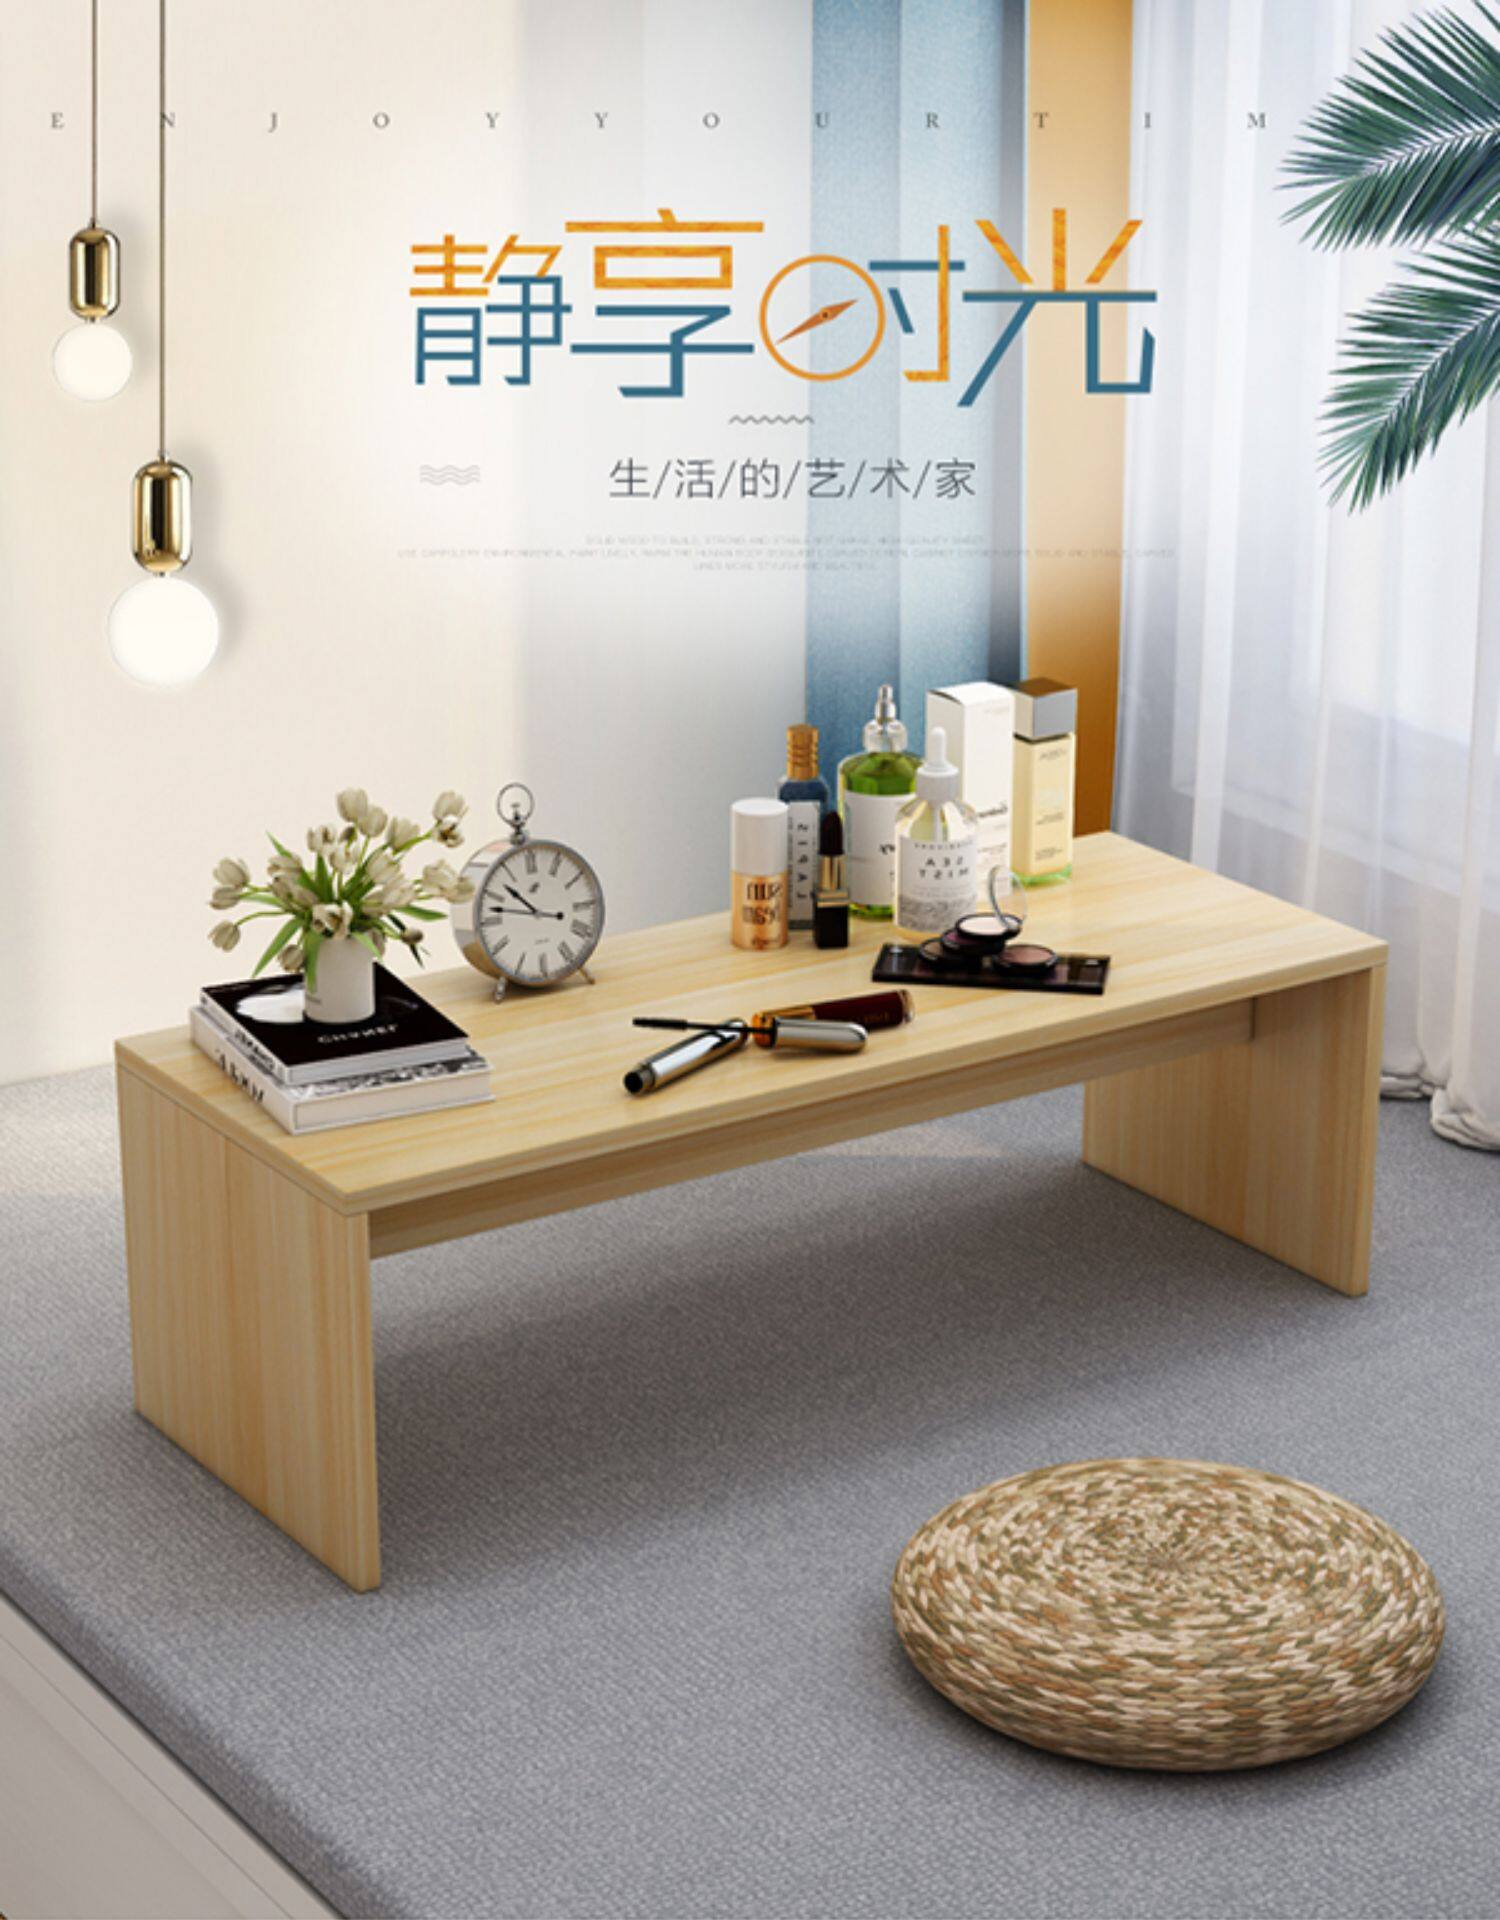 Simple Simplicity Bedroom Bedside Bed Lazy Japanese Style Small Tatami Floating Window Table Small Coffee Table Sit Lazada